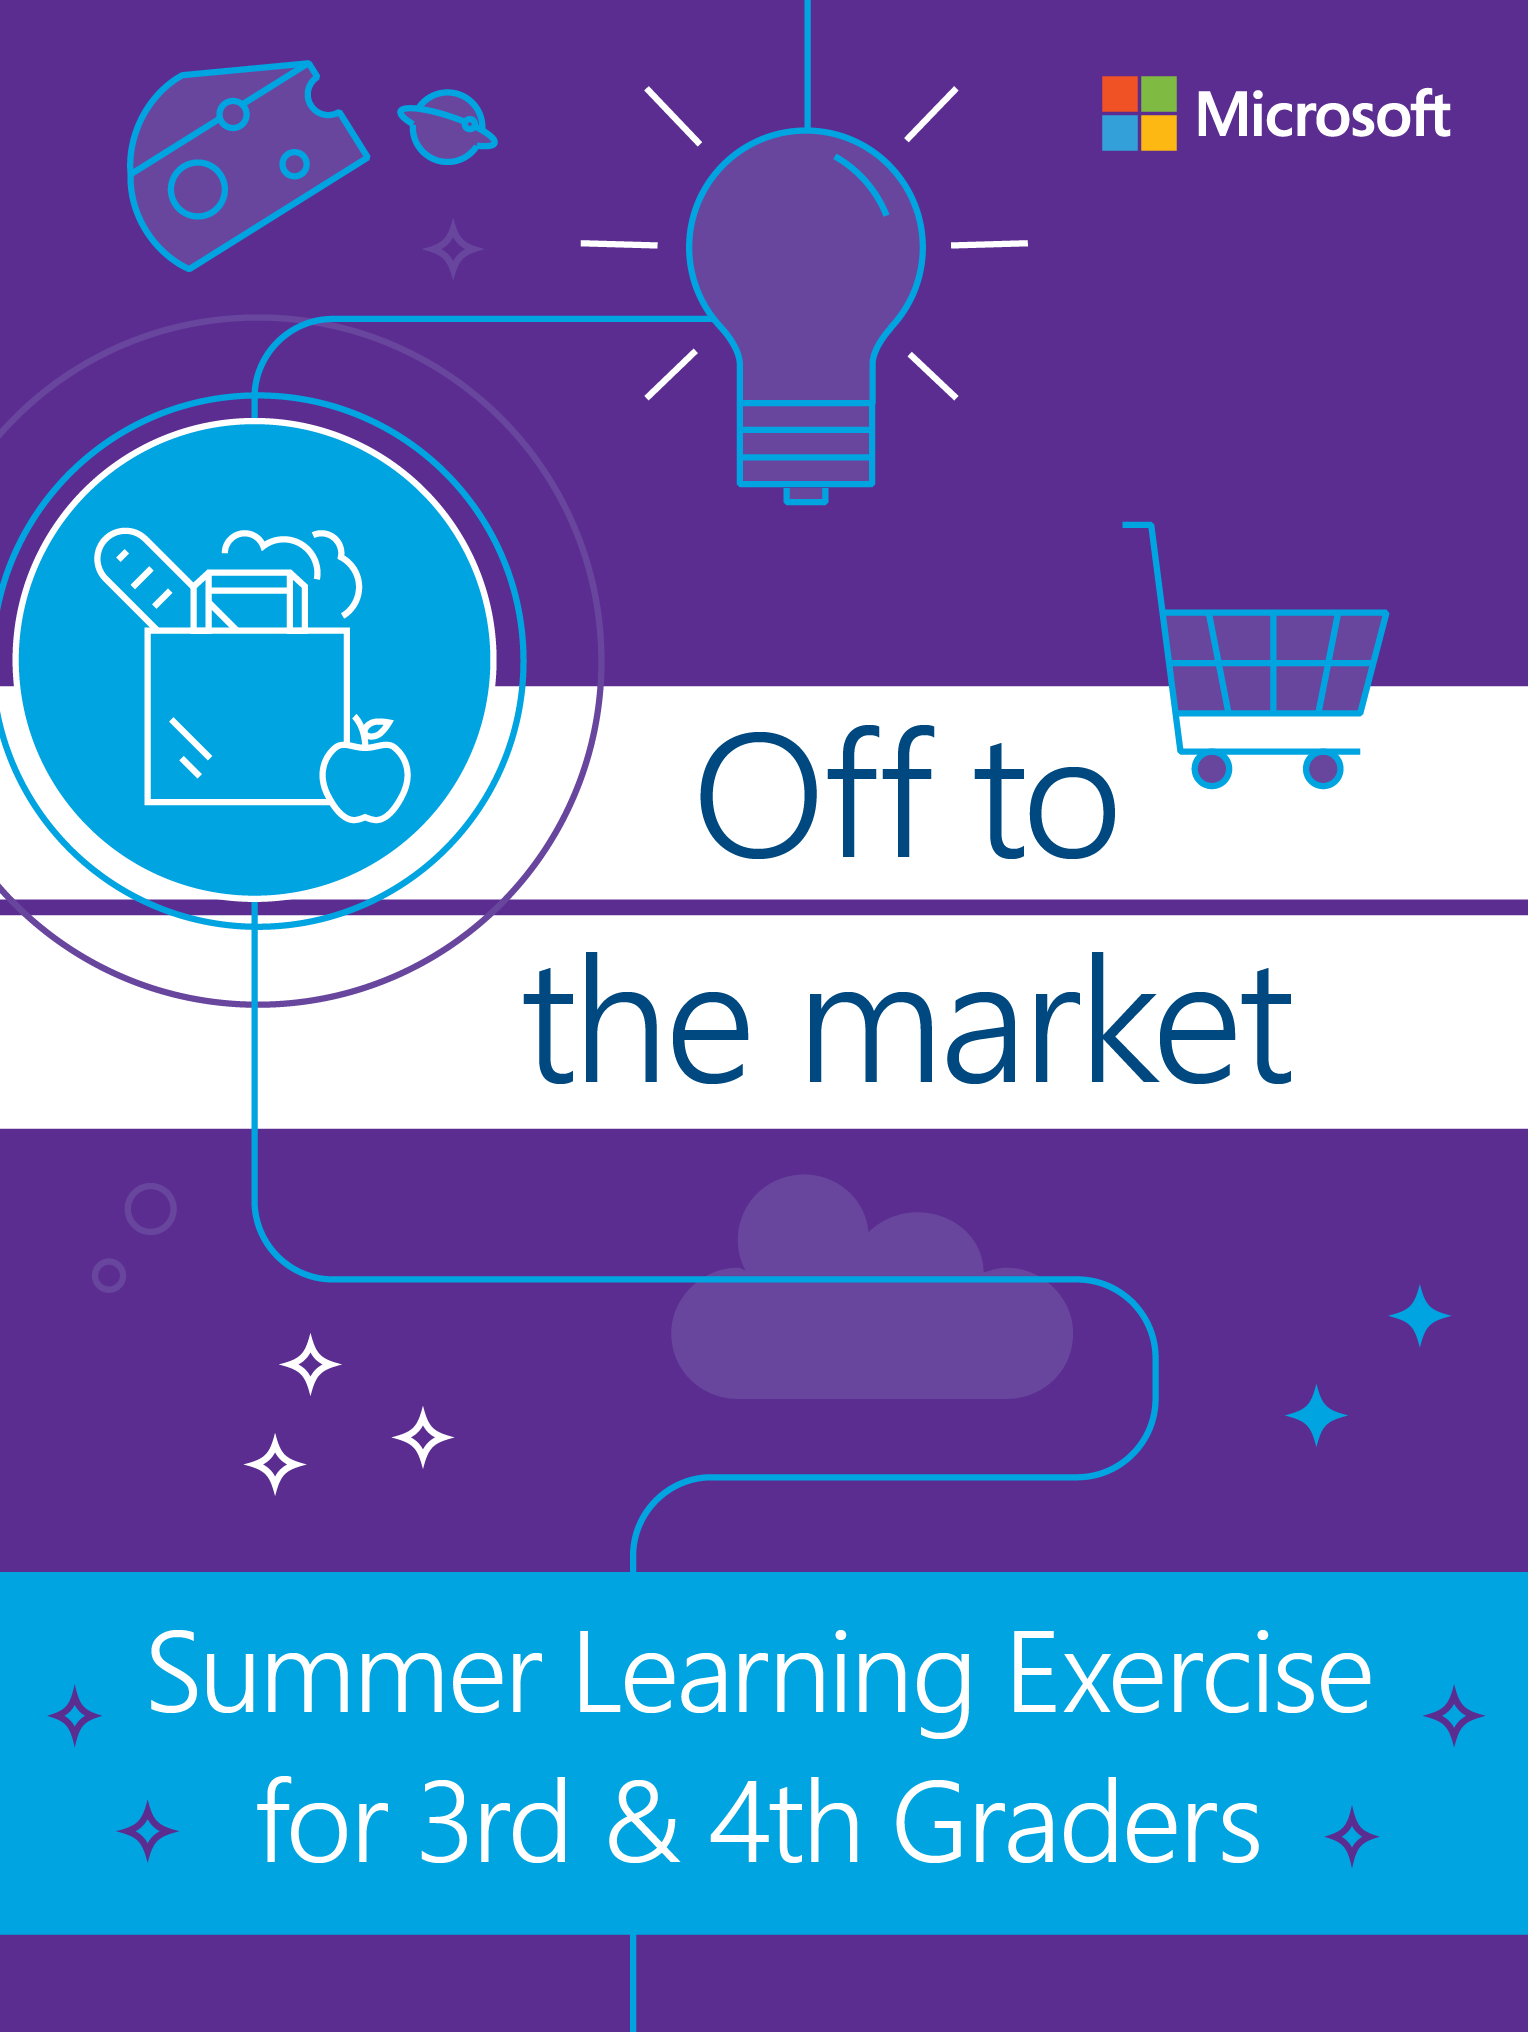 A Lesson A Day To Keep Student Skills Sharp This Summer